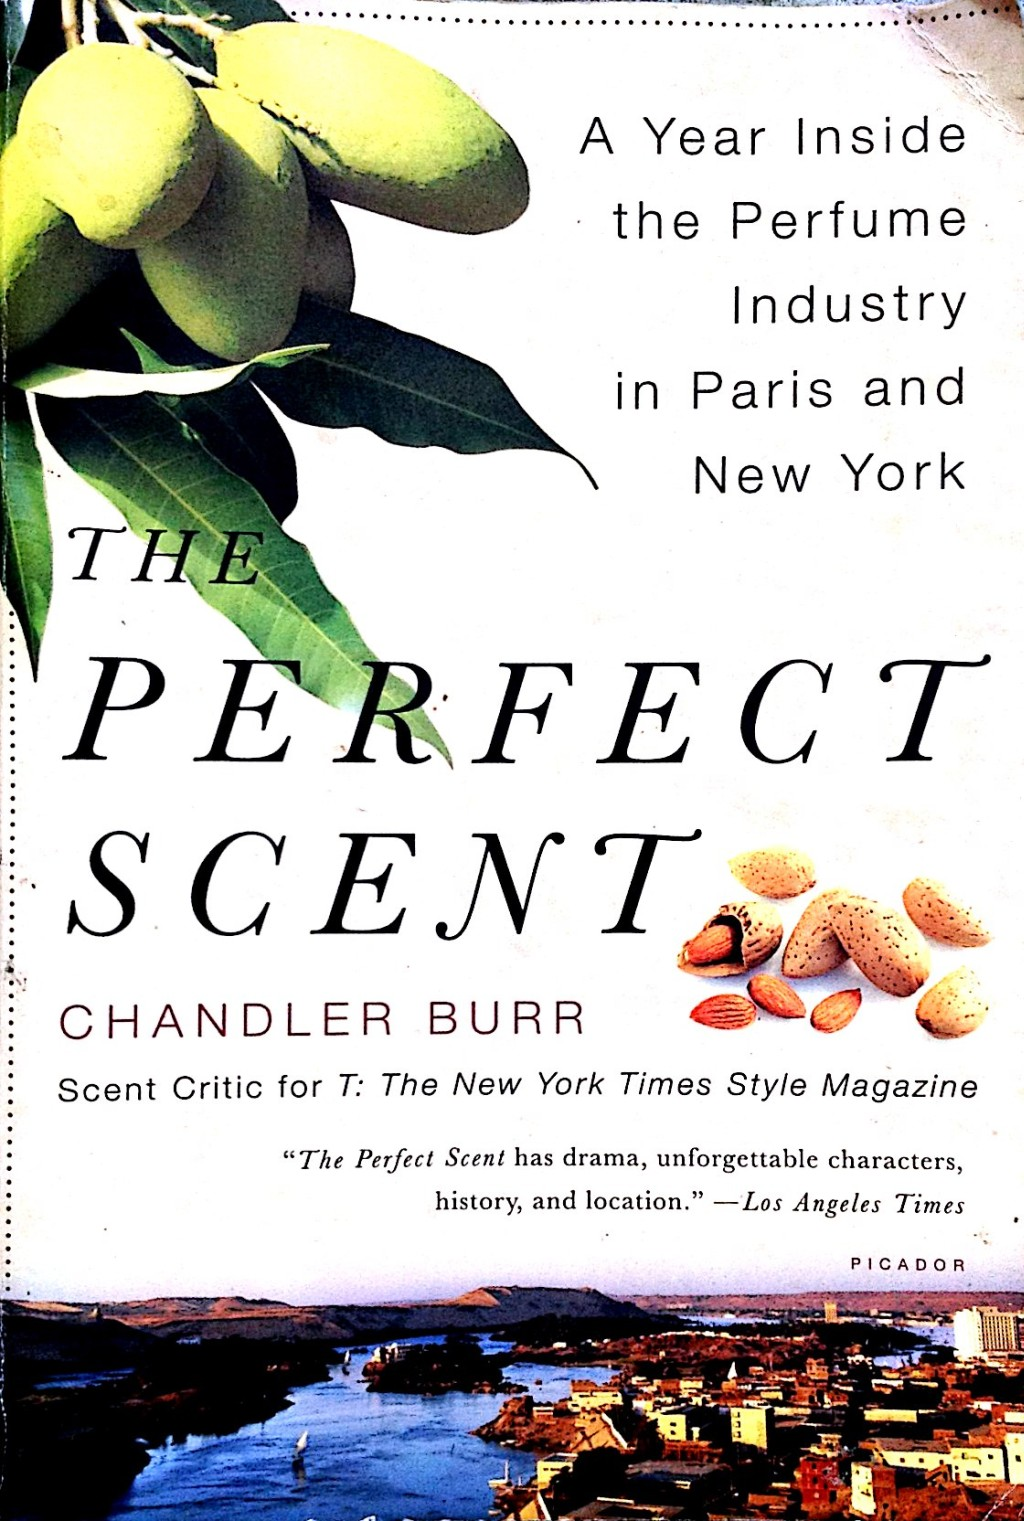 Livro: A Perfect Scent (Chandler Burr)